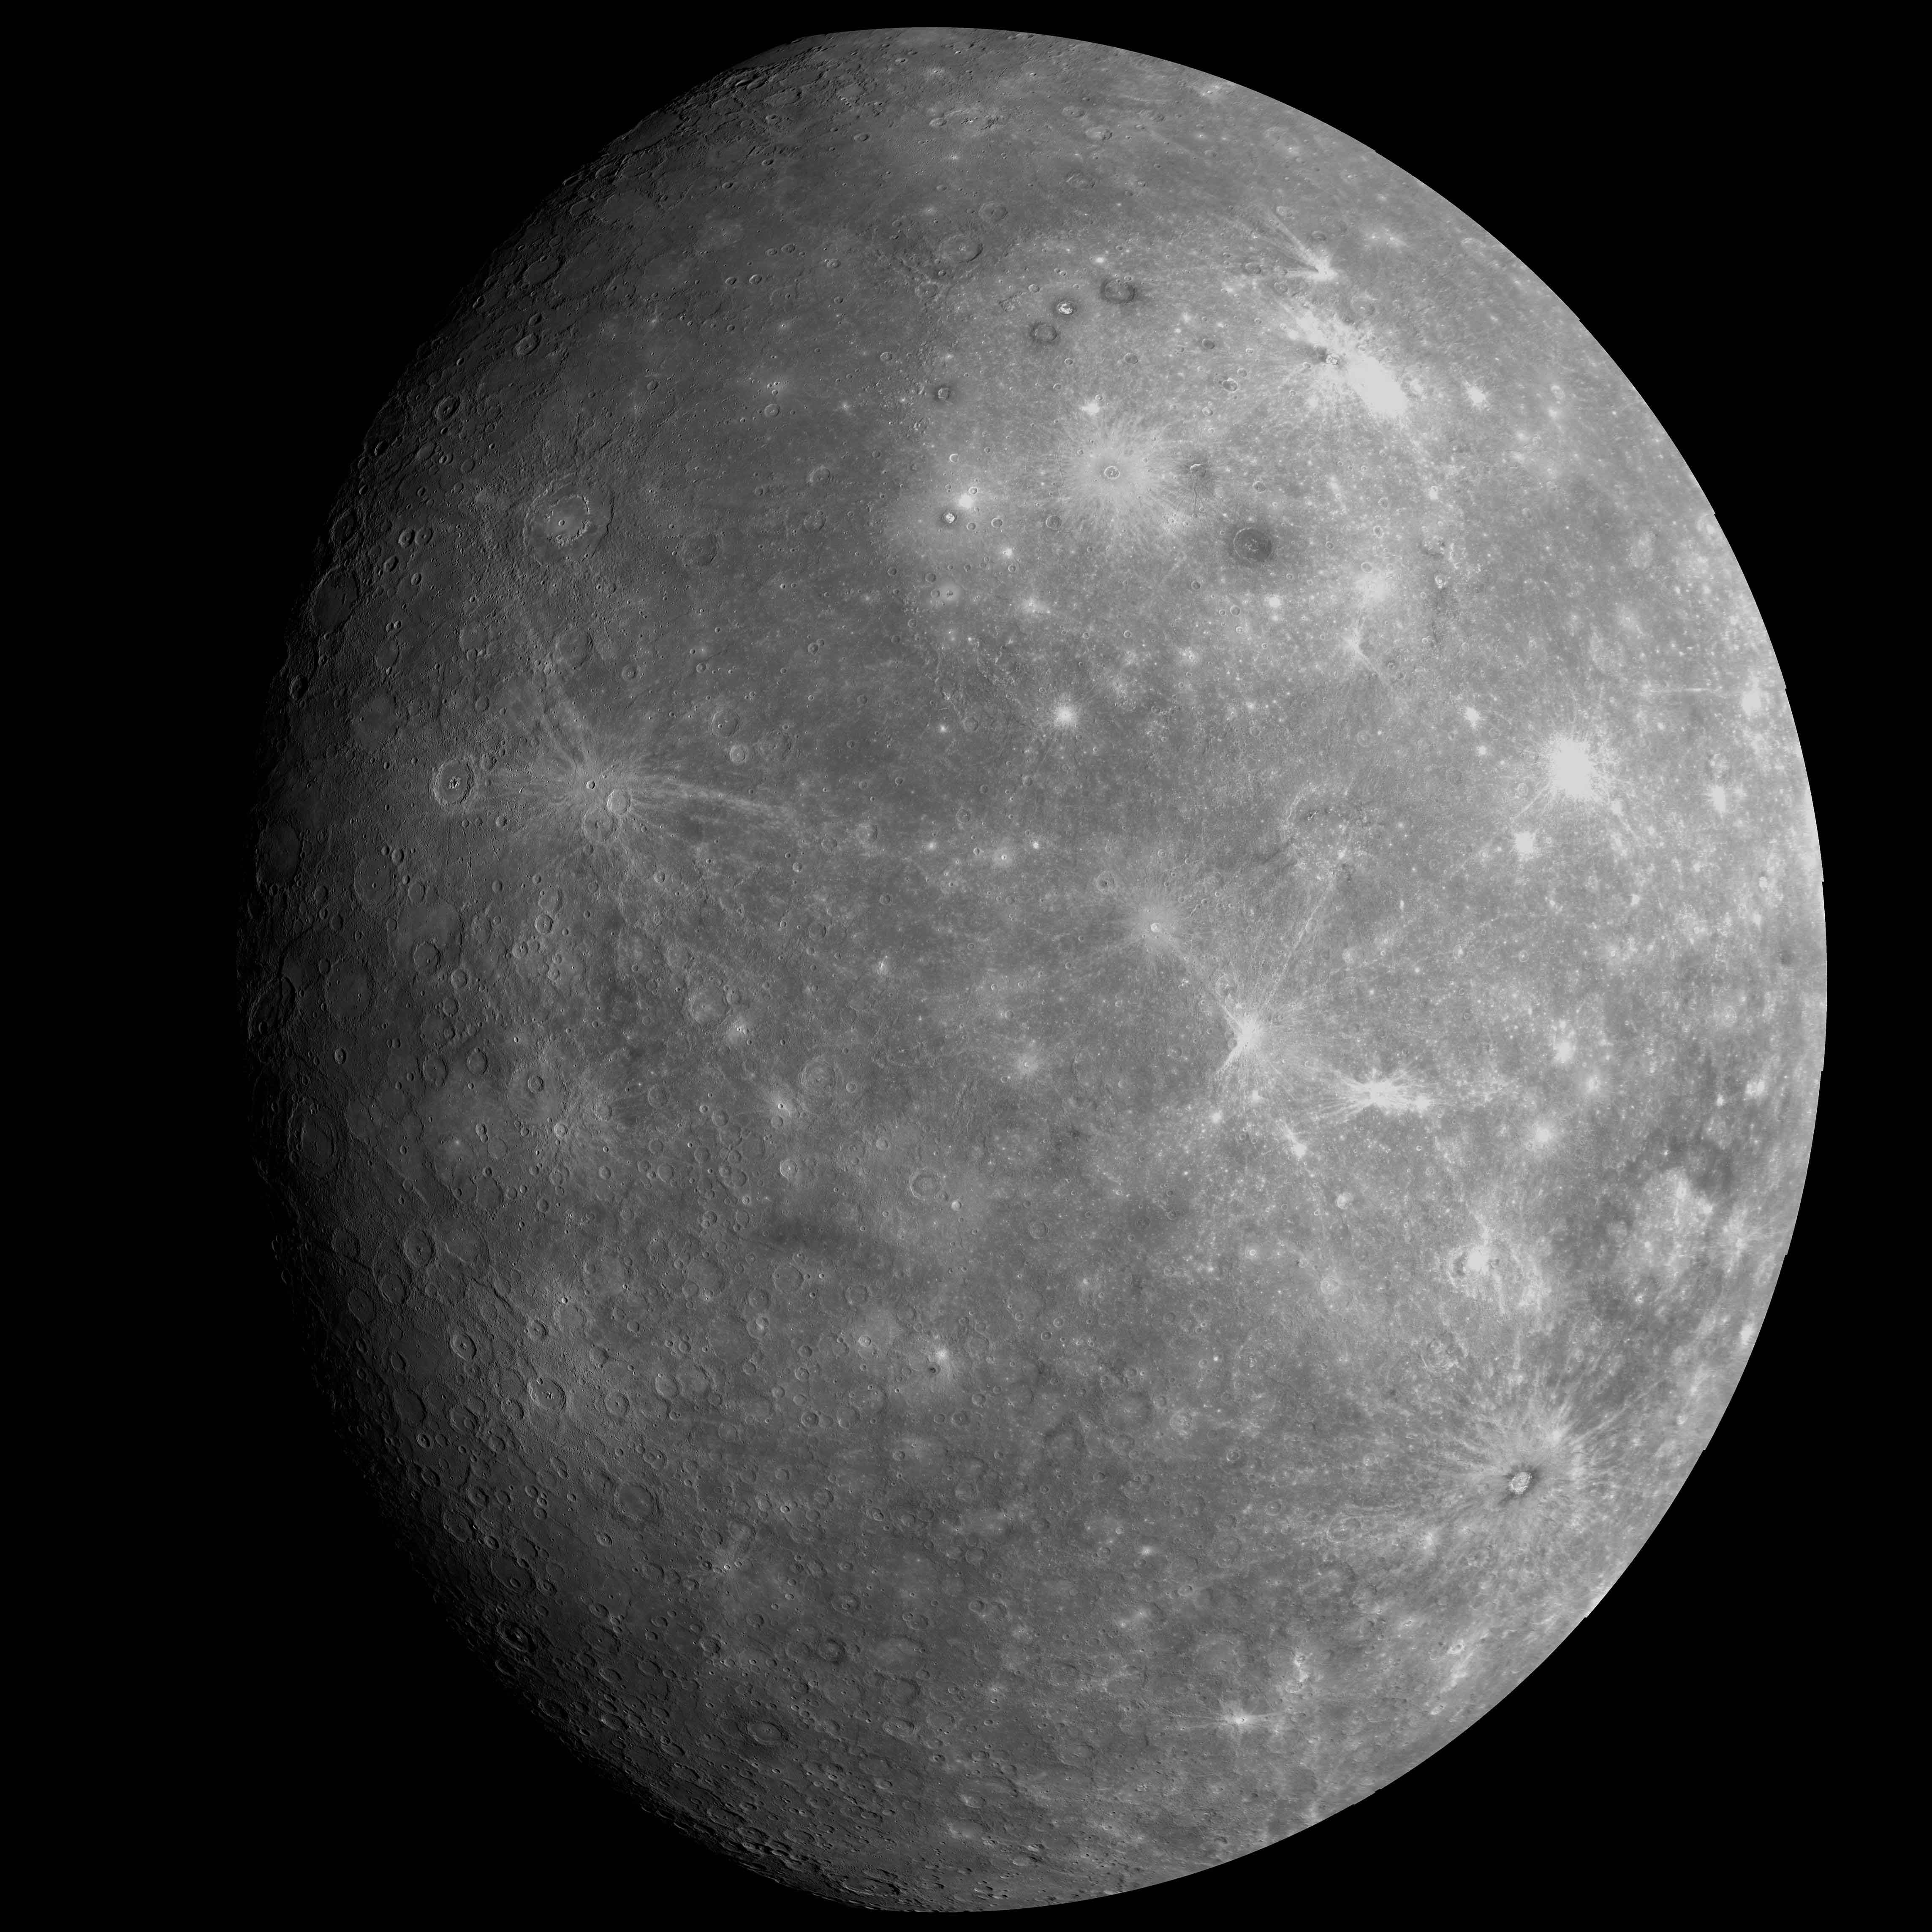 Astronomy; The Planet Mercury - Facts and Photos | Mercury ...